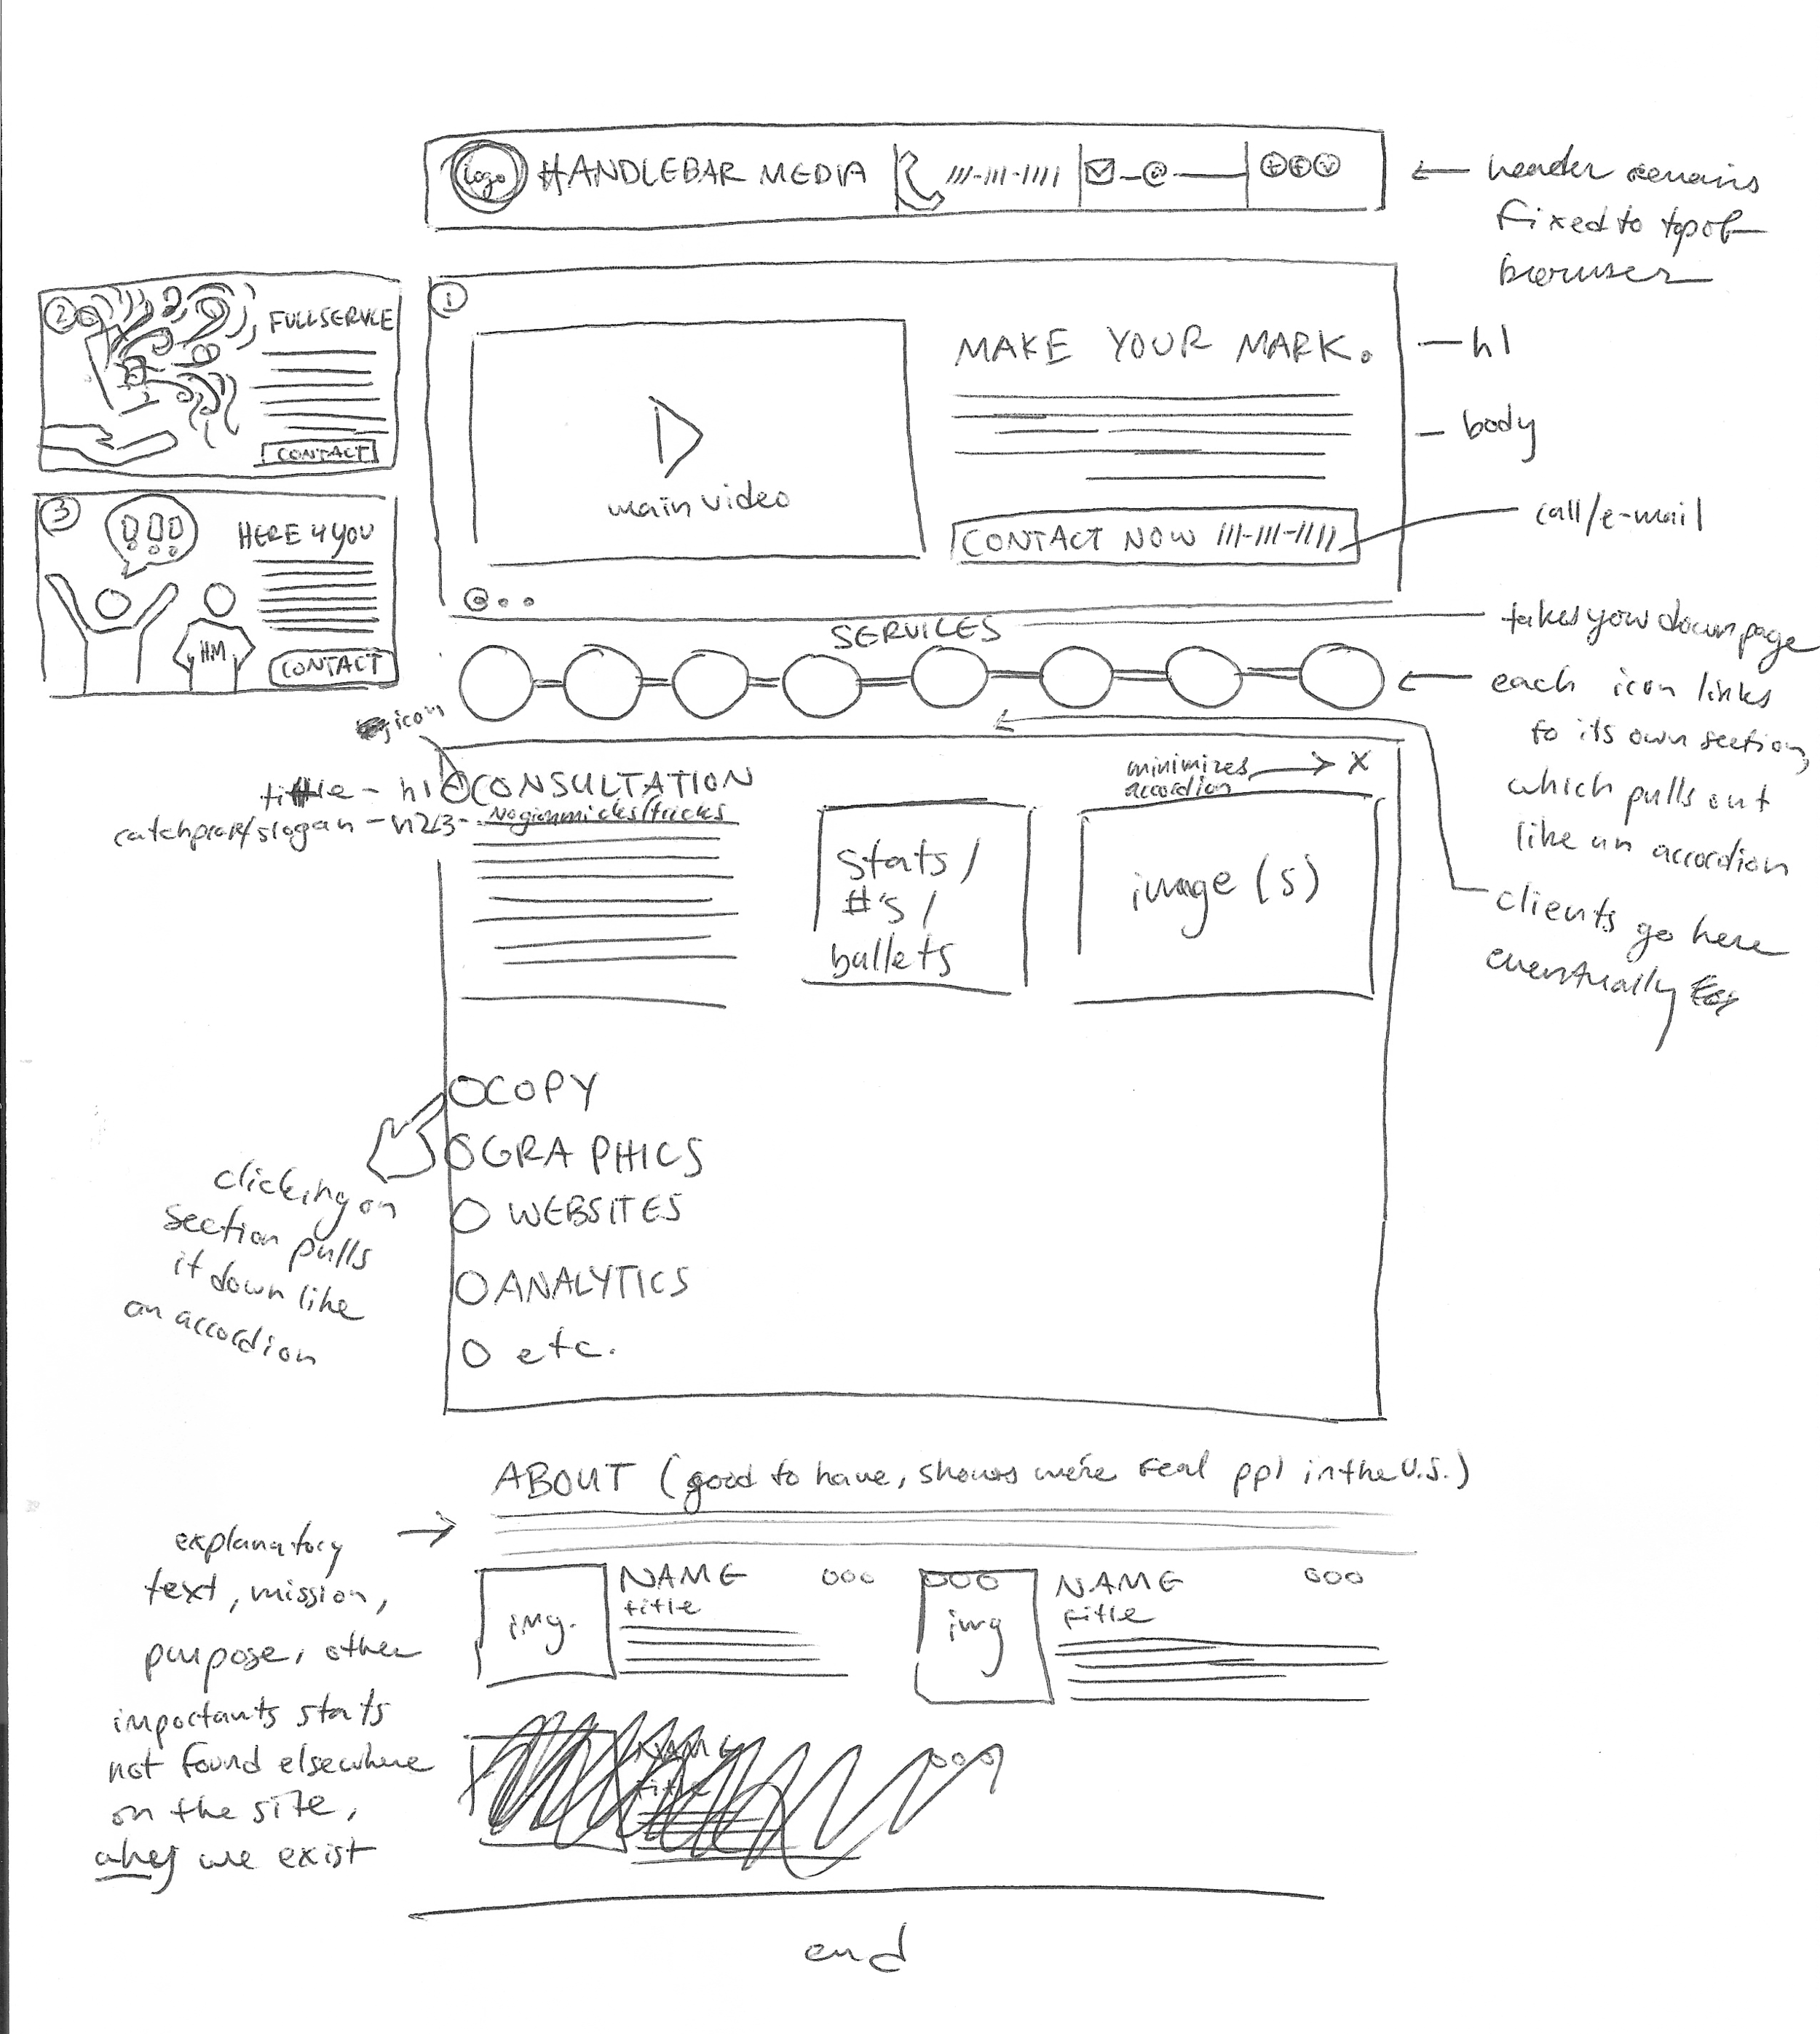 Organizing the UX/UI so that it presents the best identity possible.